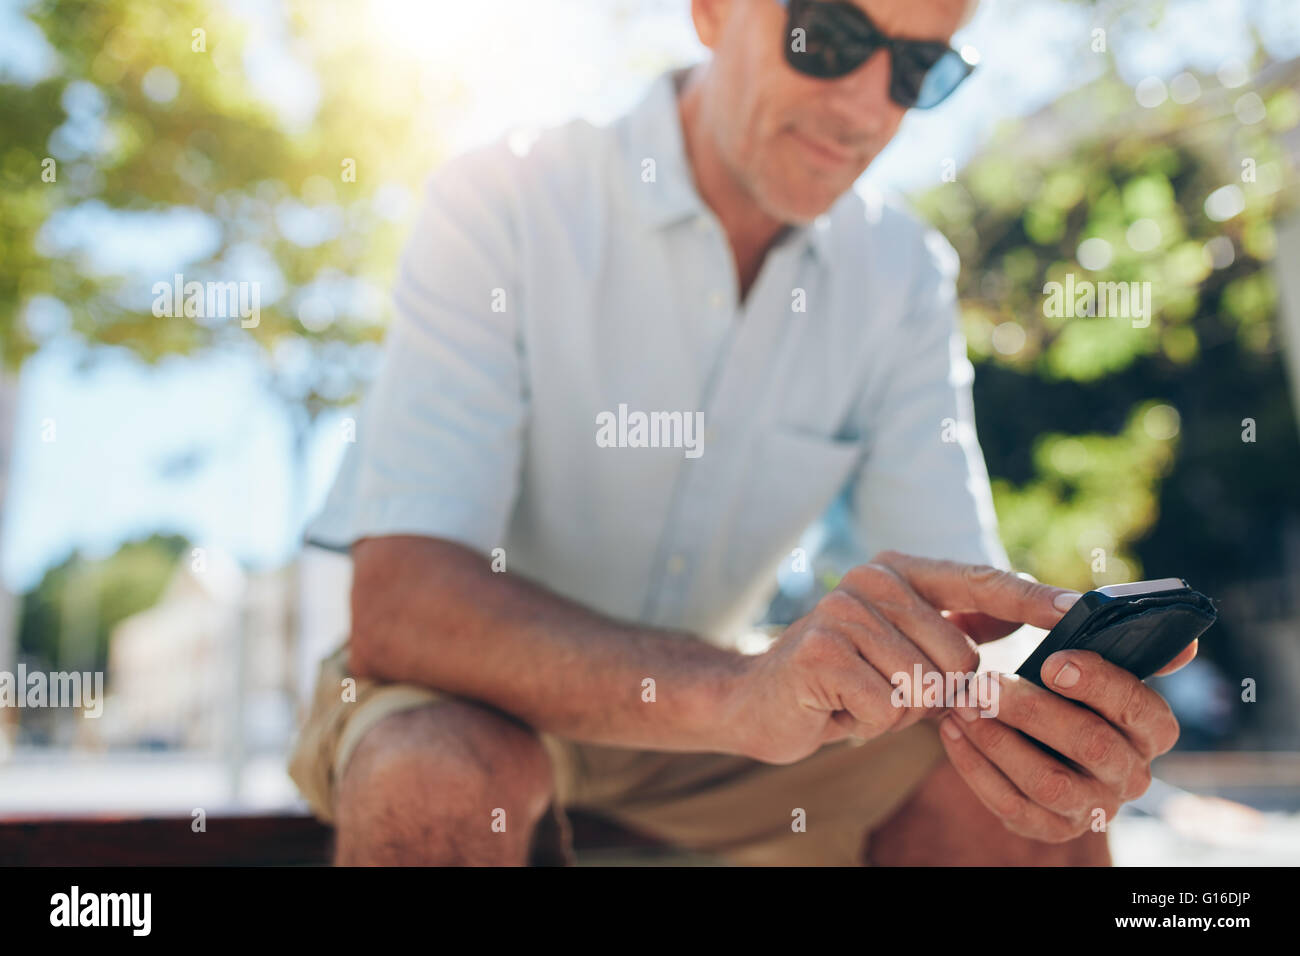 Close up portrait of senior man using cell phone while sitting on a bench in the city on a sunny day. Focus on hands - Stock Image